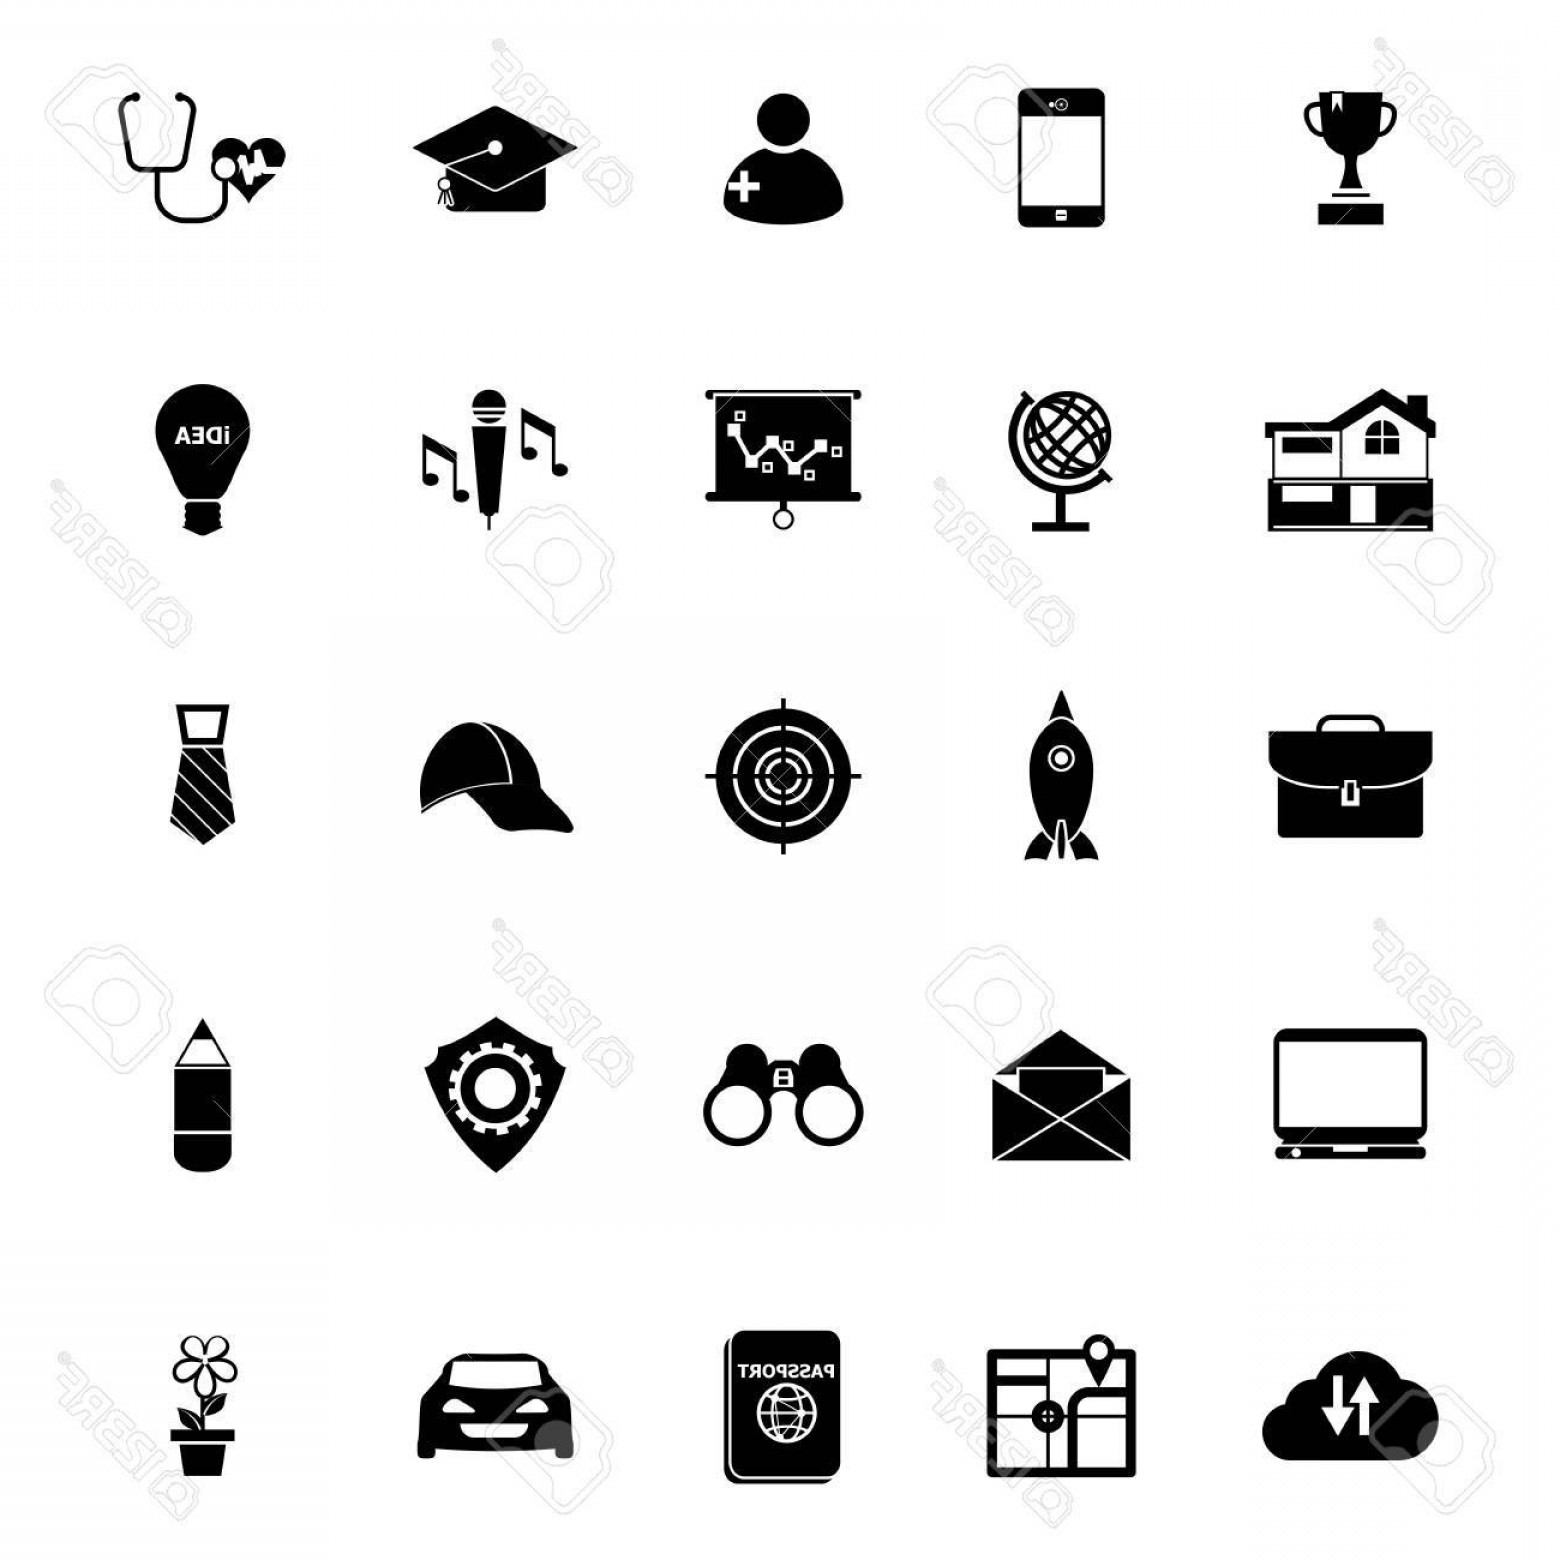 Vectors Job Description: Photostock Vector Job Description Icons On White Background Stock Vector